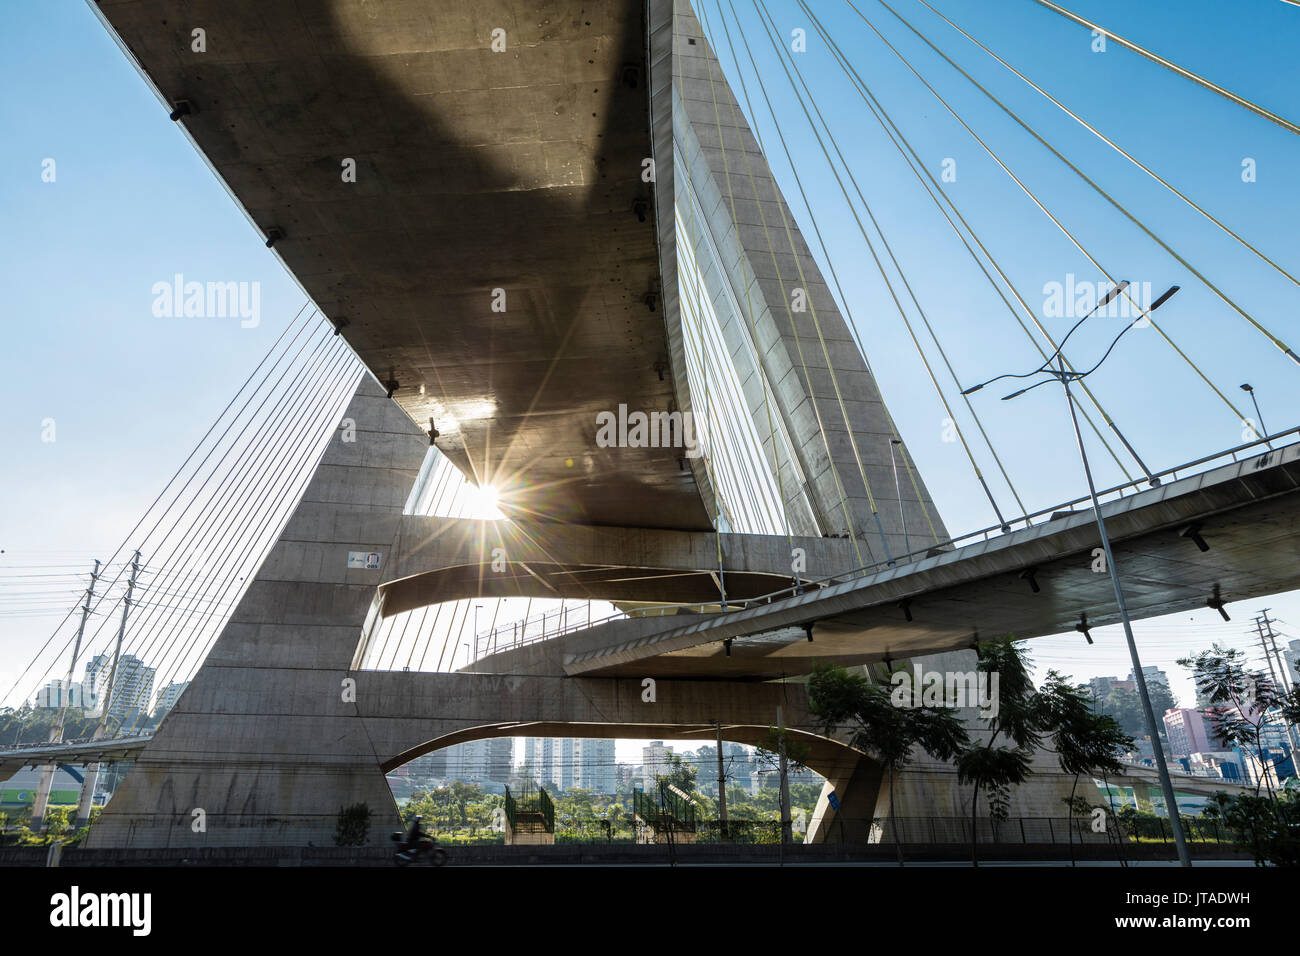 Octavio Frias de Oliveira Bridge by Joao Valente Filho in the Brooklin district of Sao Paulo, Brazil - Stock Image